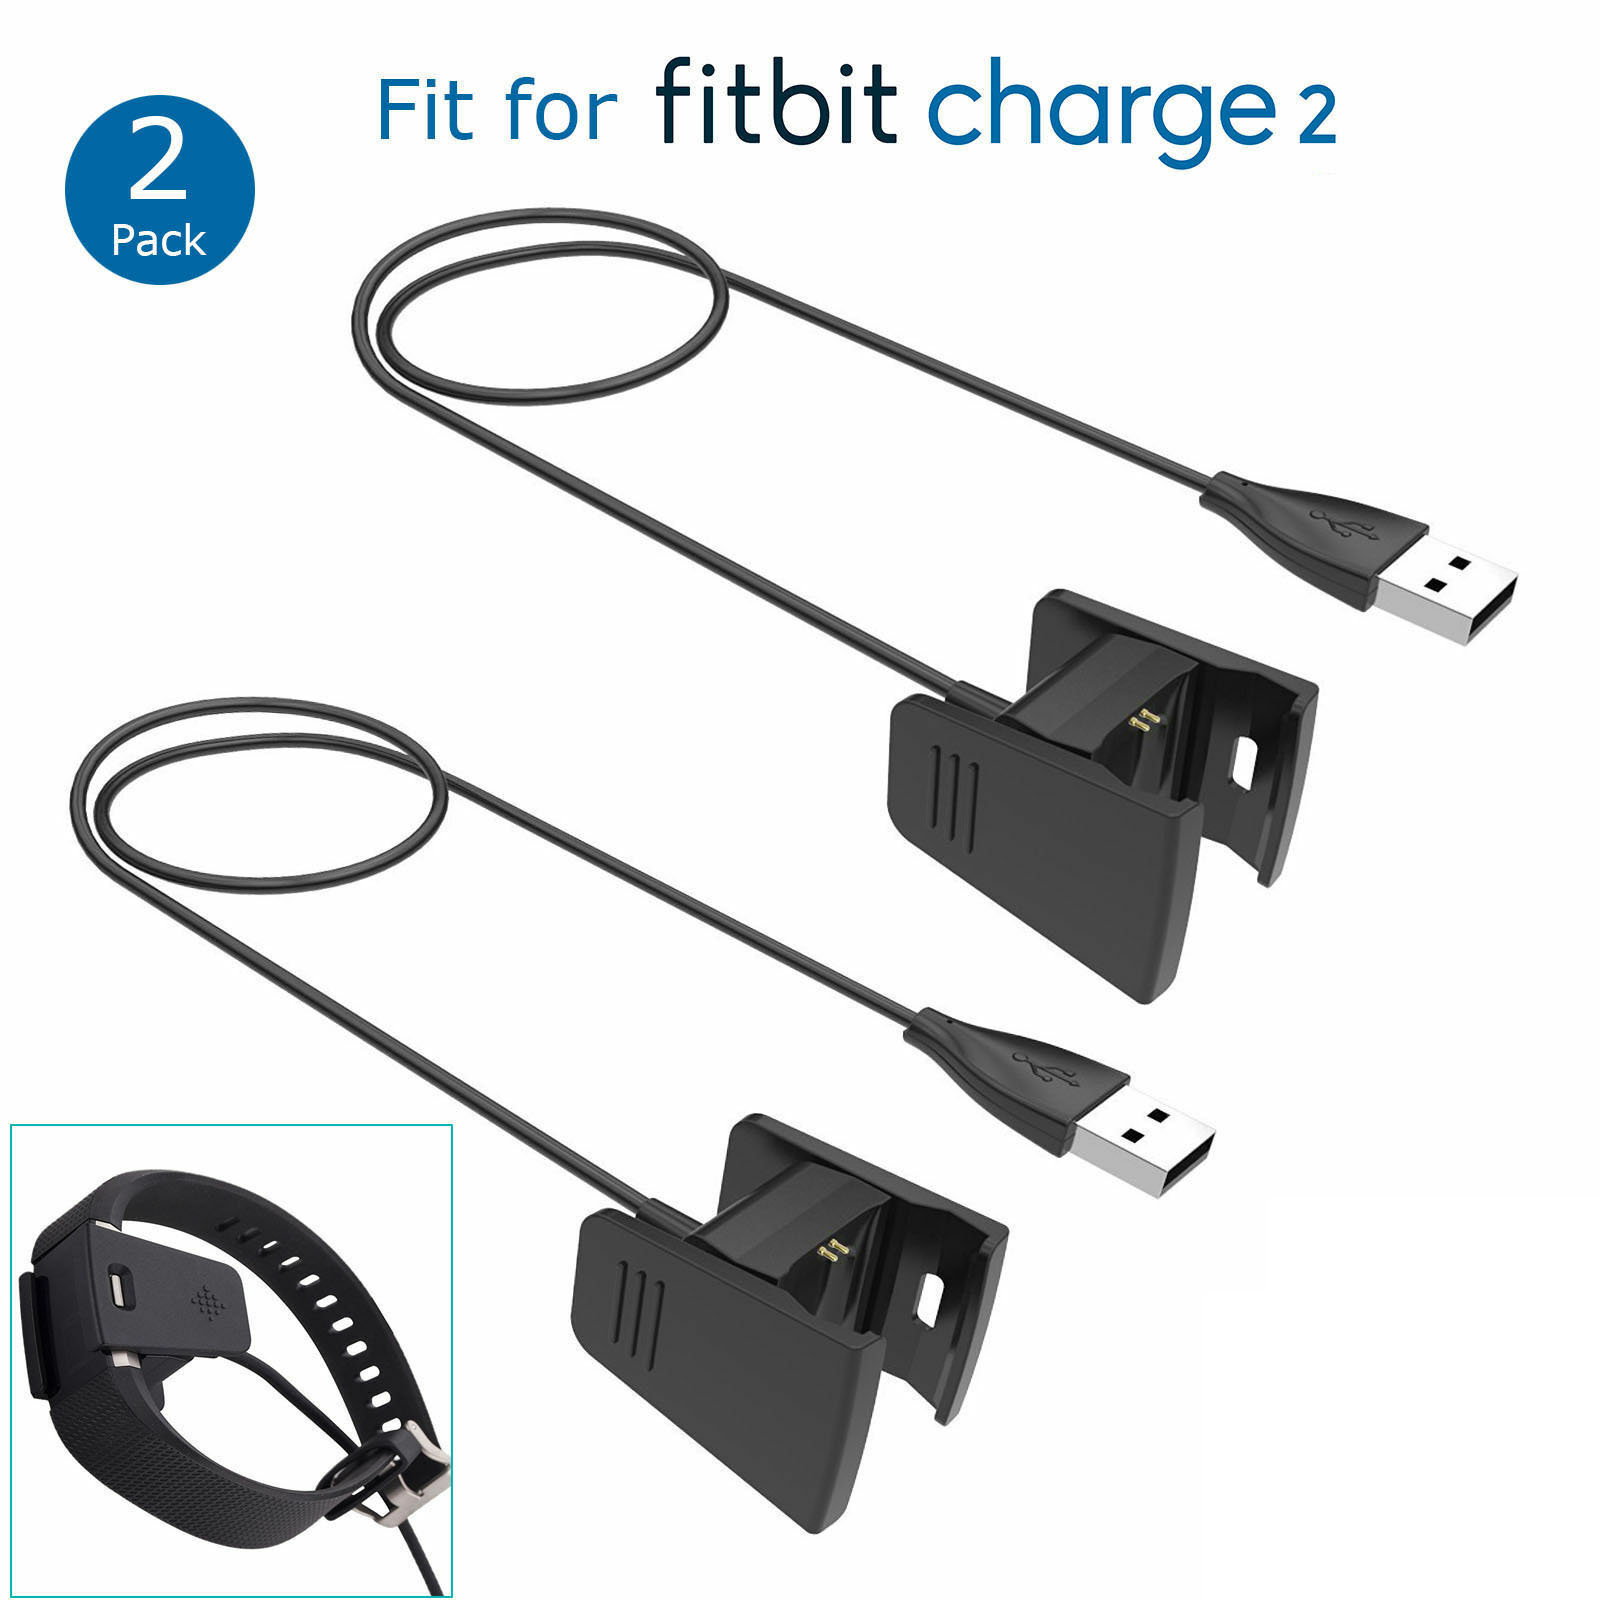 EEEKit USB Charger Cord, 2-Pack Replacement Accessory Charging Dock Cable for Fitbit Charge 2 Activity Tracker